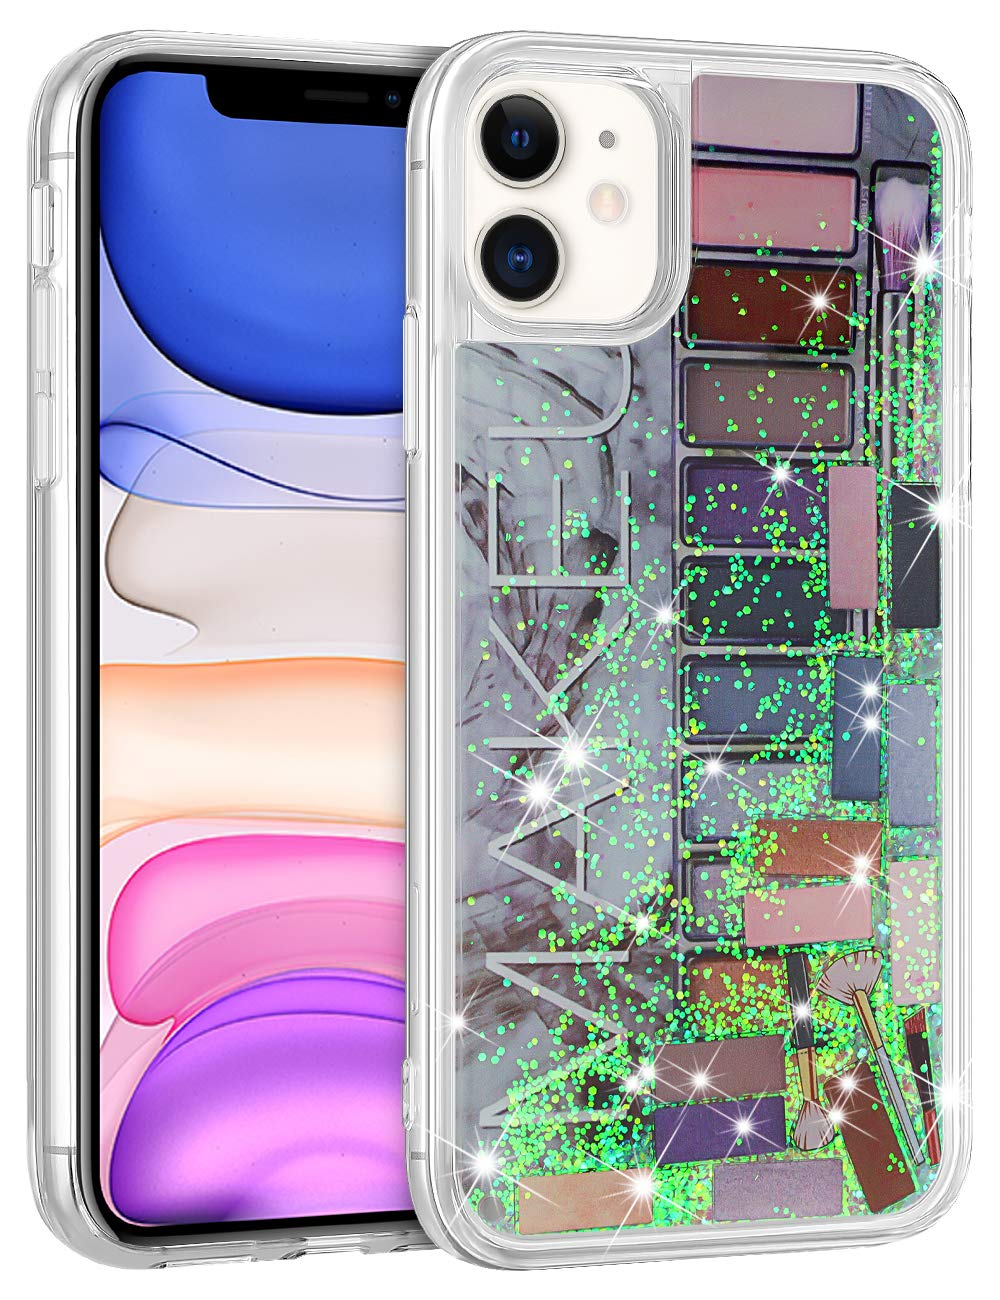 Wollony for iPhone 11 Case for Women Girls Cute Pink Eye Shadow Jigsaw Puzzle Makeup Bling Glitter Liquid Heavy Duty Shockproof Protective Cover Soft TPU Bumper Hard Back for iPhone 11 6.1inch Grey